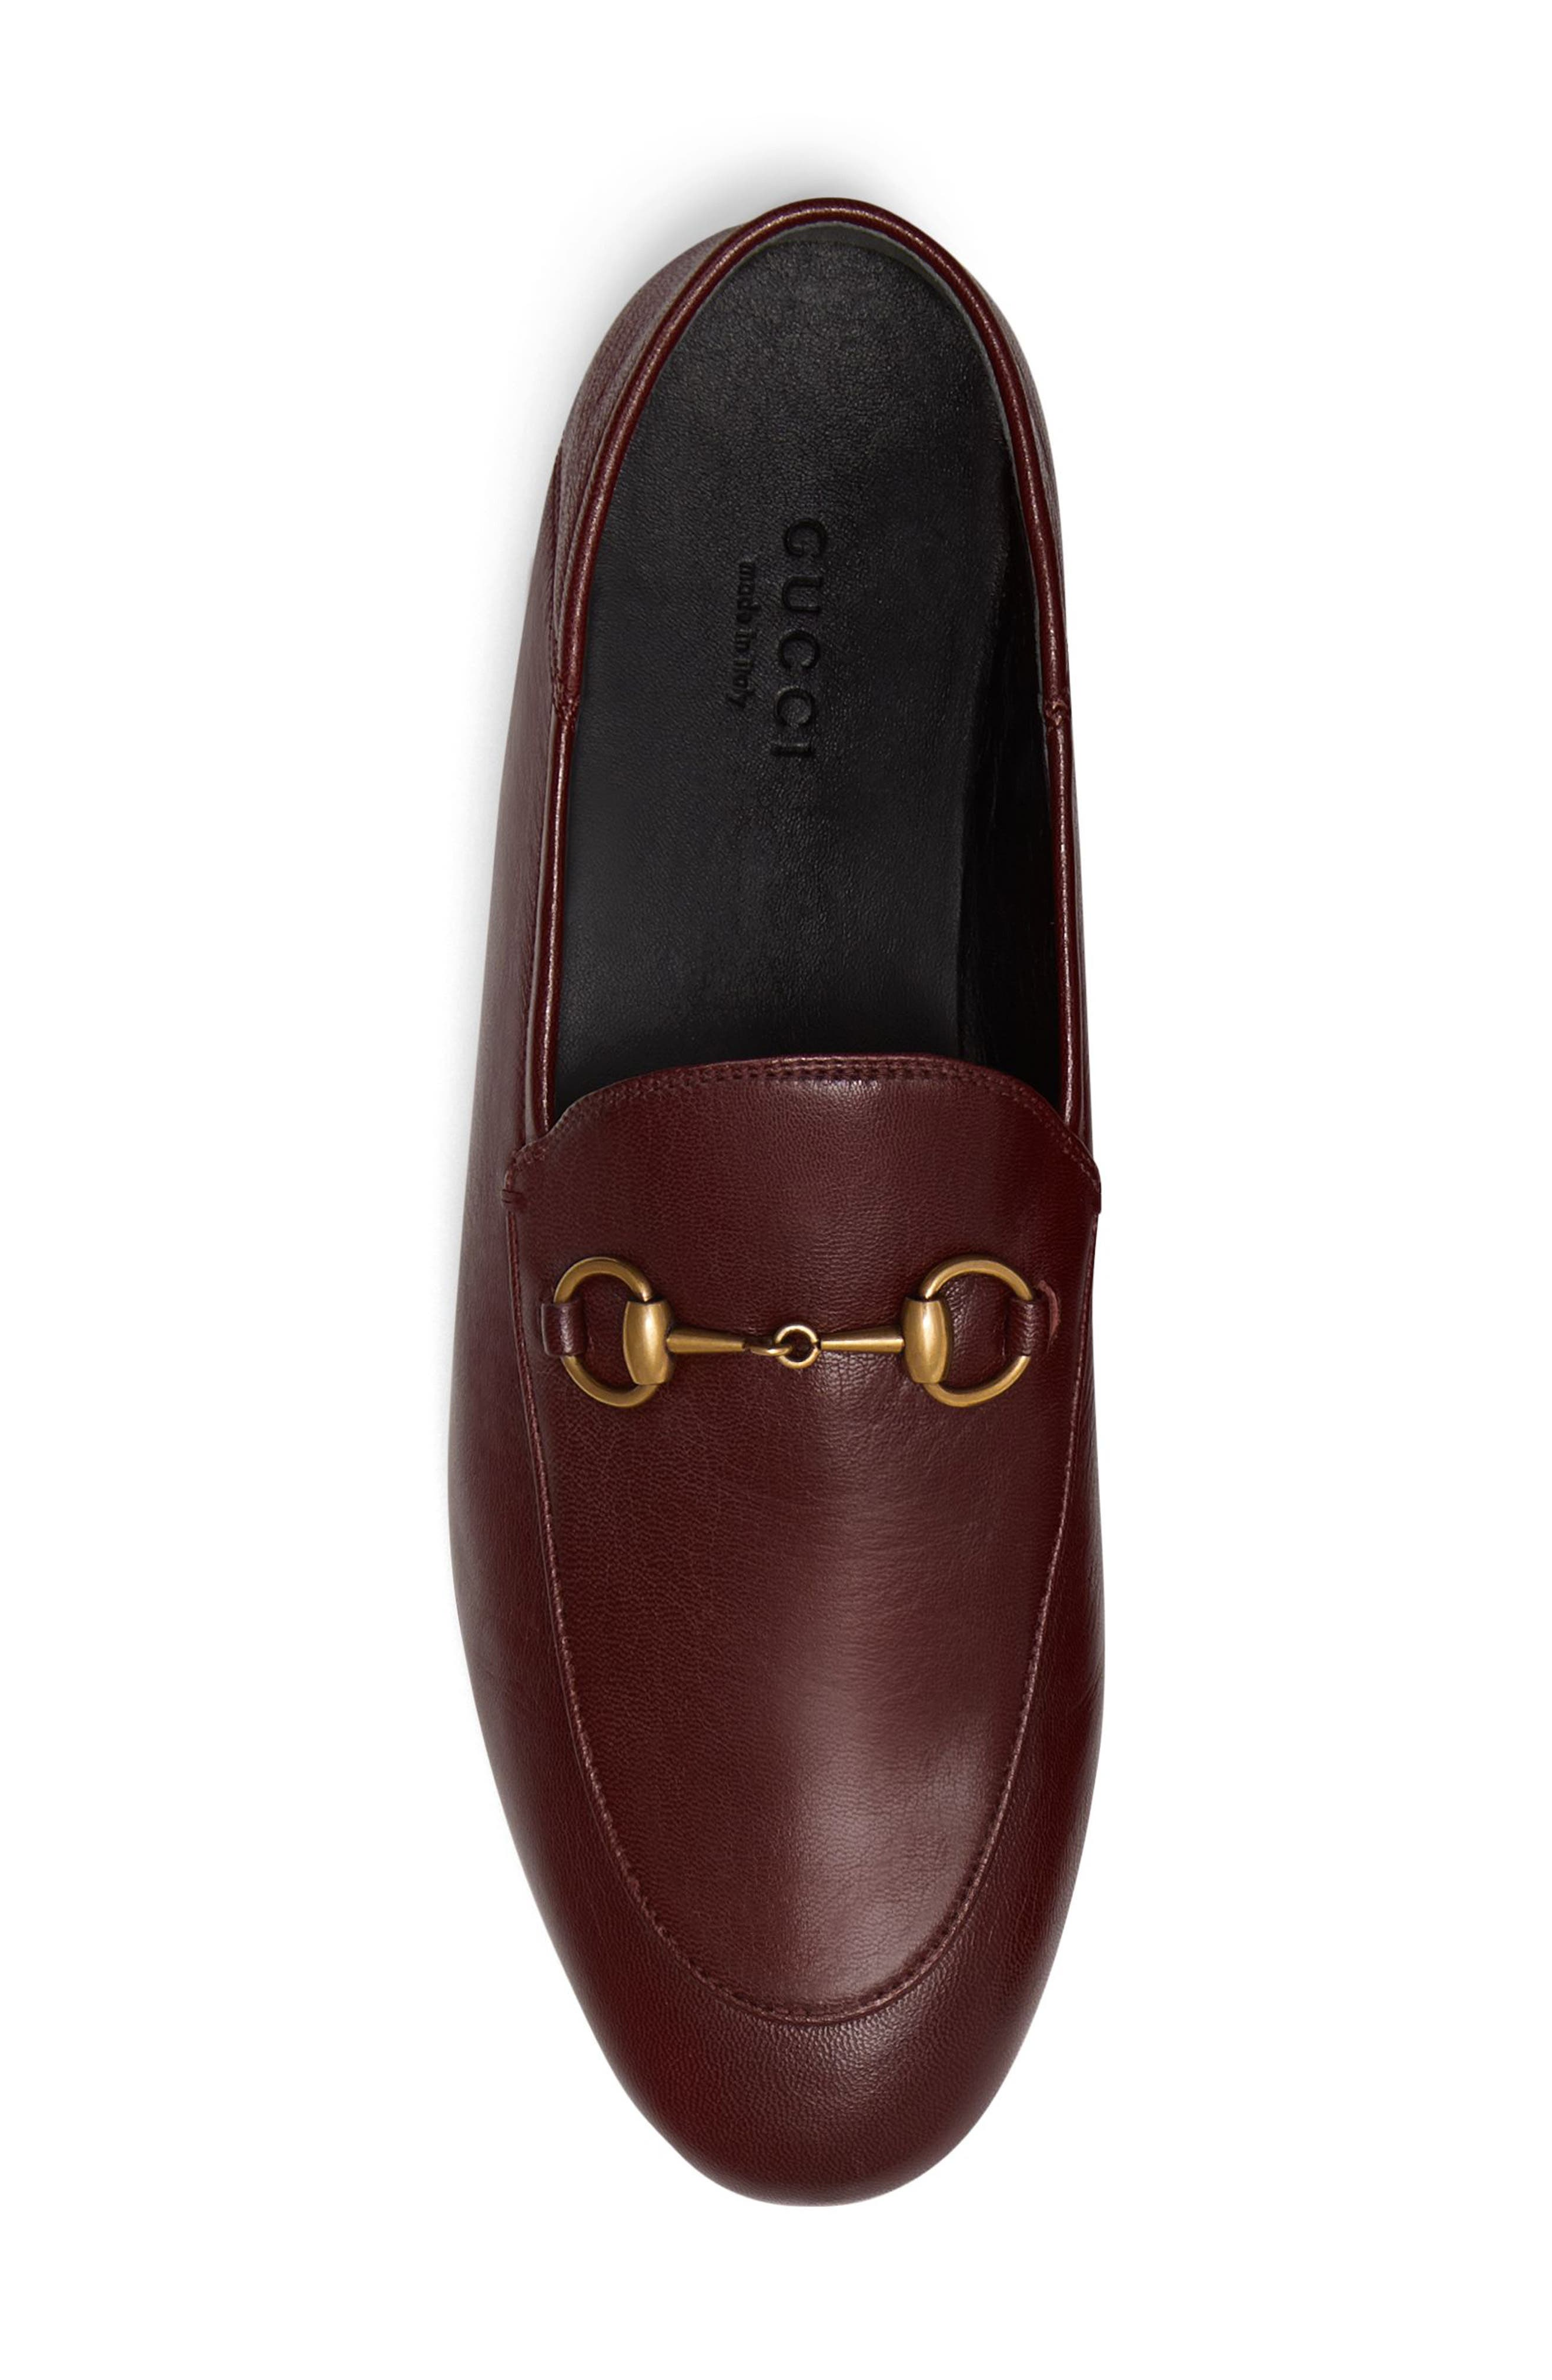 Brixton Convertible Loafer,                             Alternate thumbnail 4, color,                             VINTAGE BORDEAUX